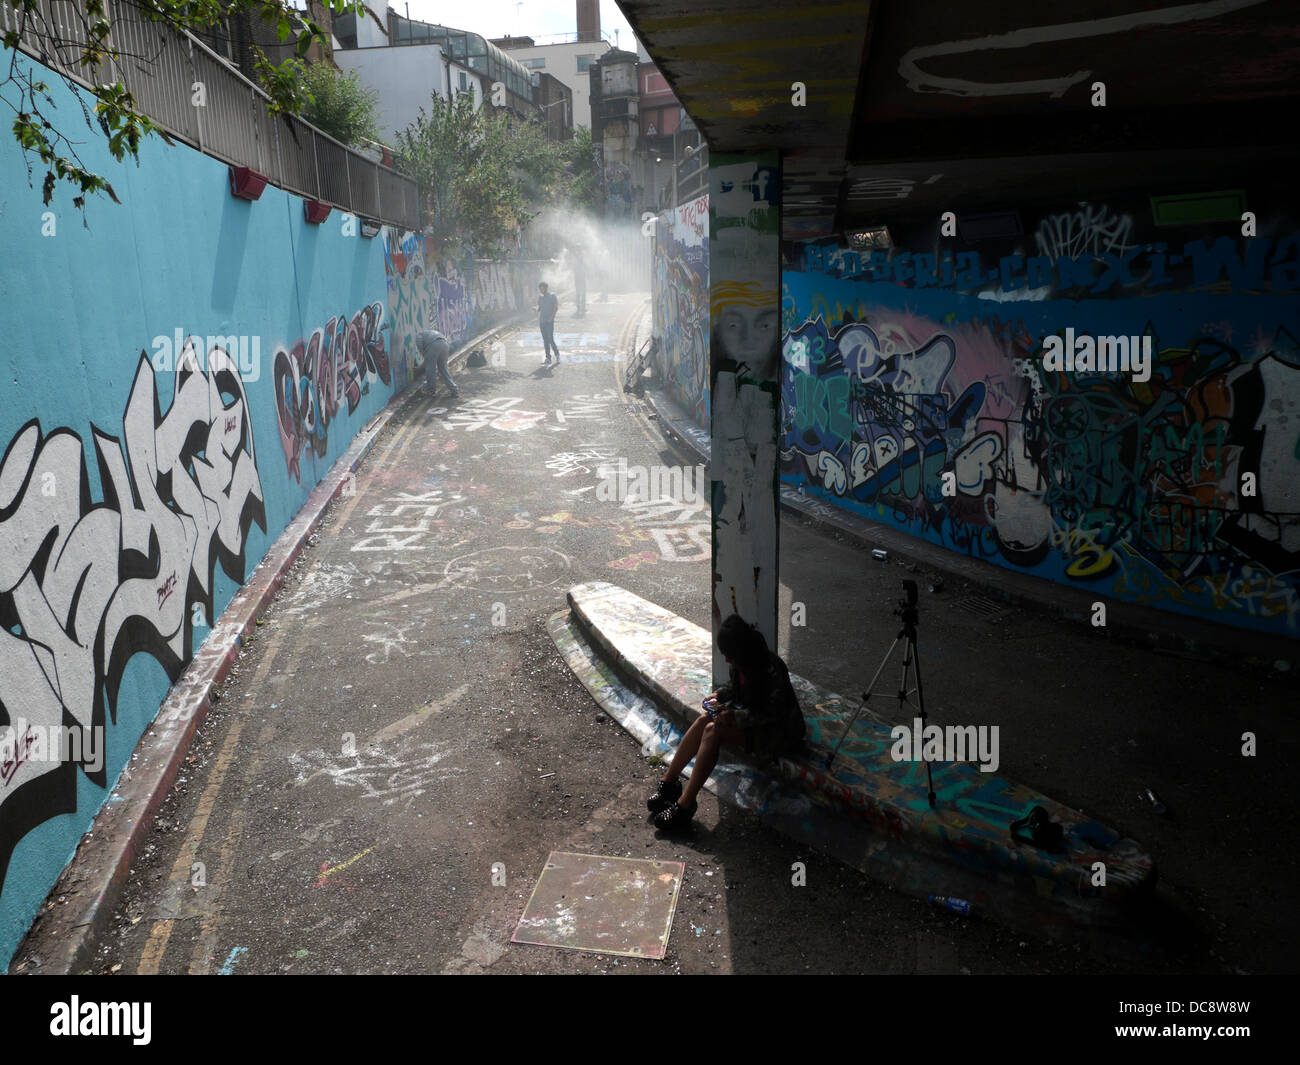 Artists spray painting with cans in the Leake Street Grafitti Tunnel, Lambeth London England UK - Stock Image